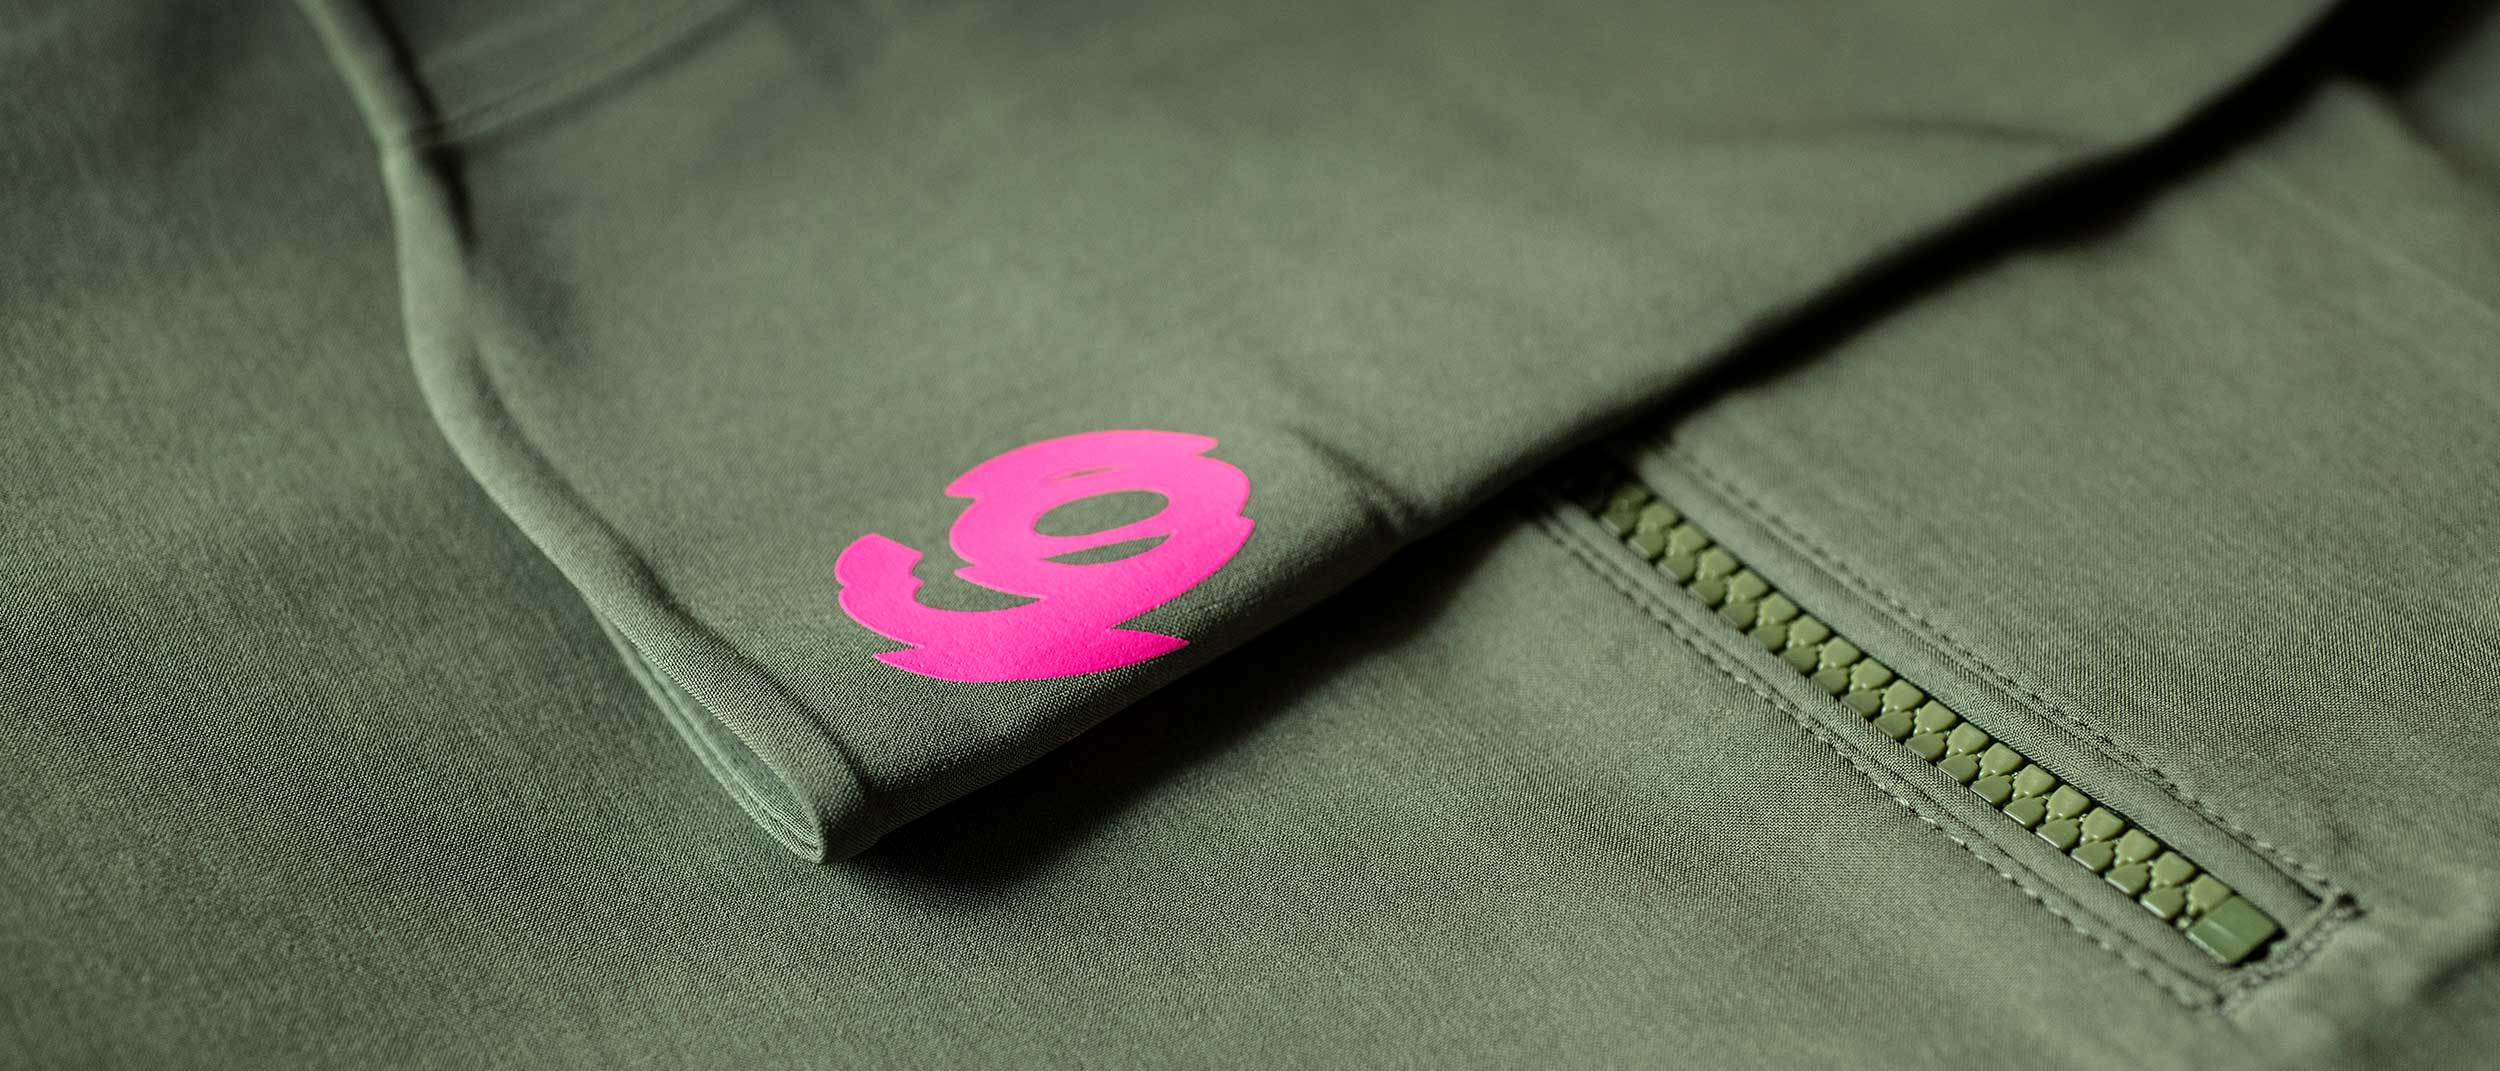 Pink 94 logo detail next to zip pocket